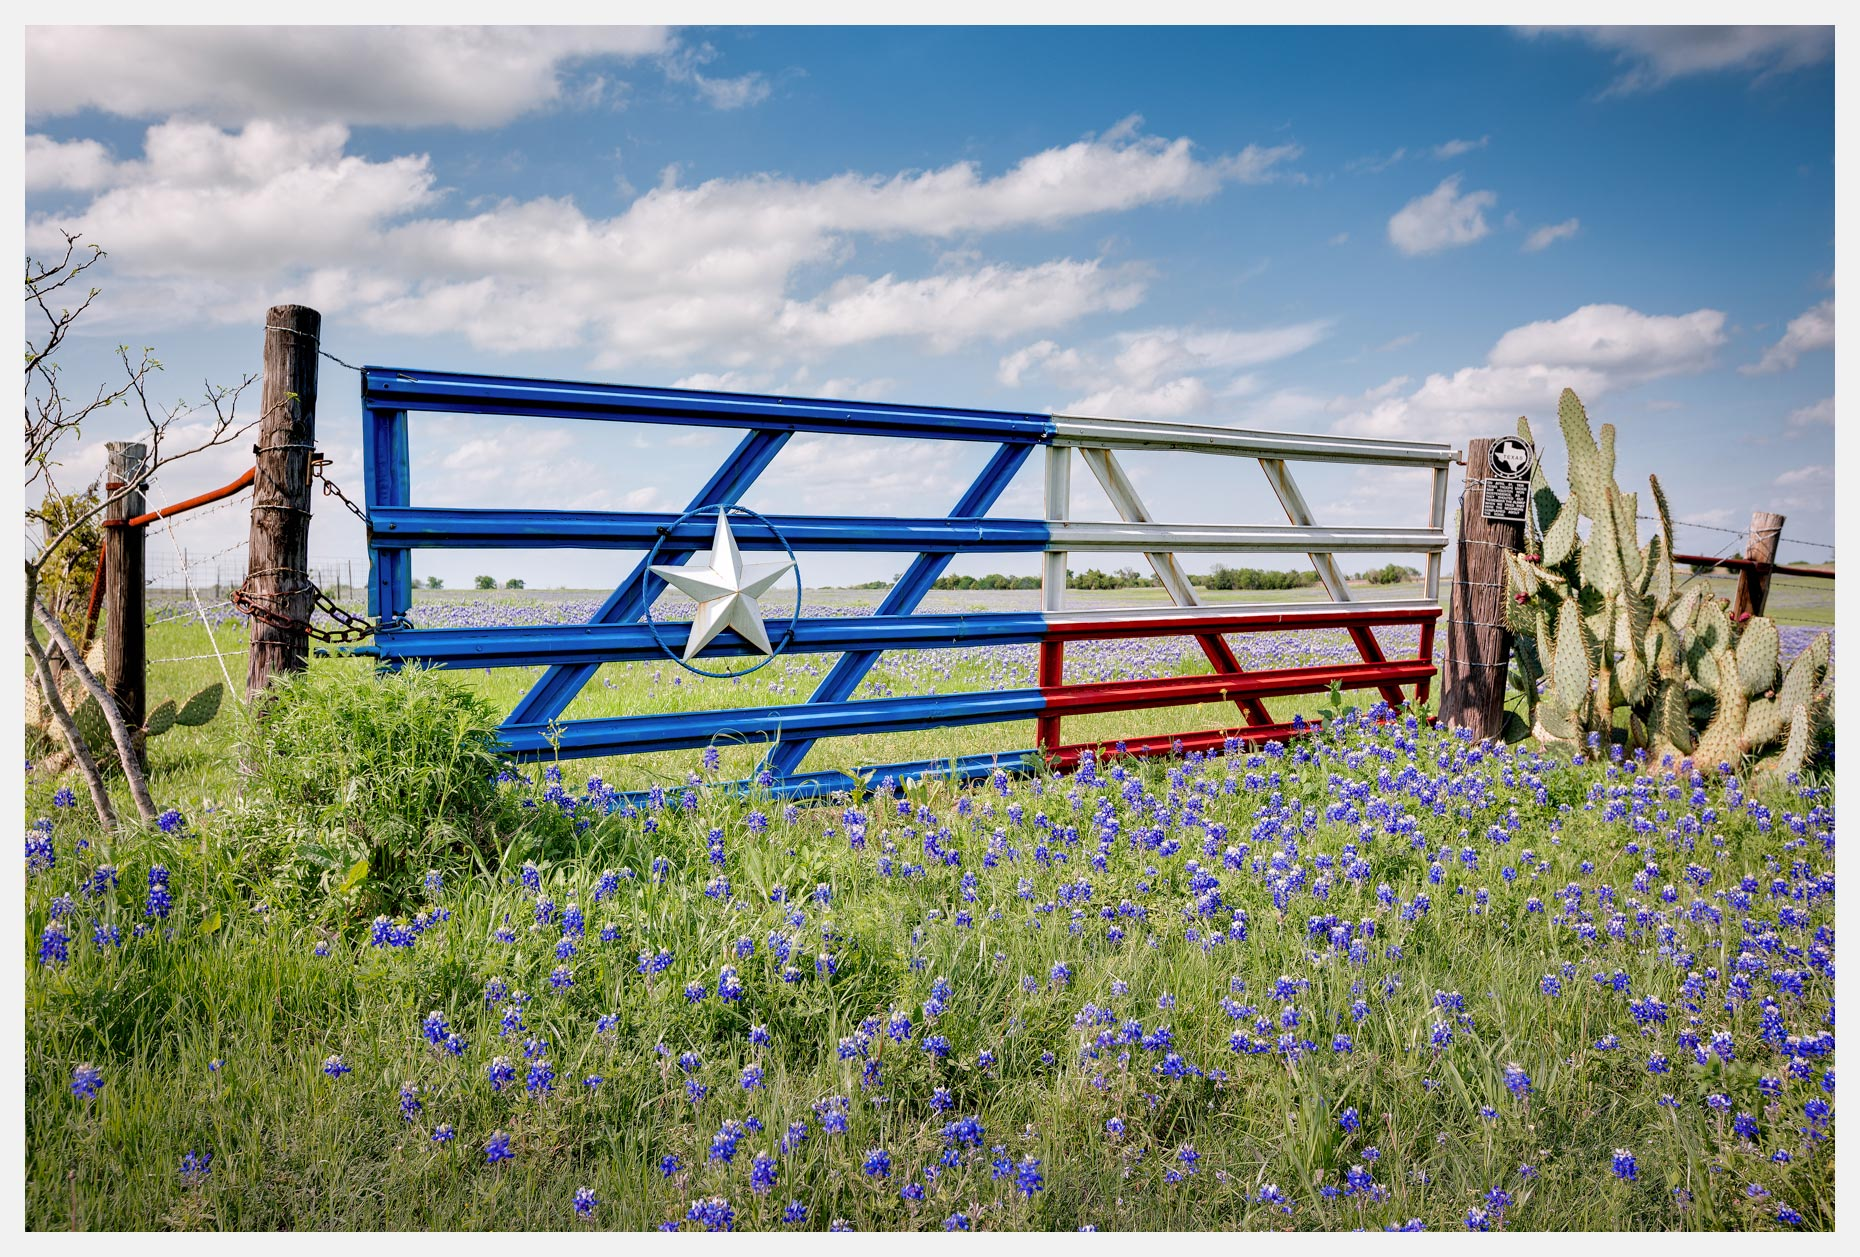 Lone-Star-Gate-With-Bluebonnets